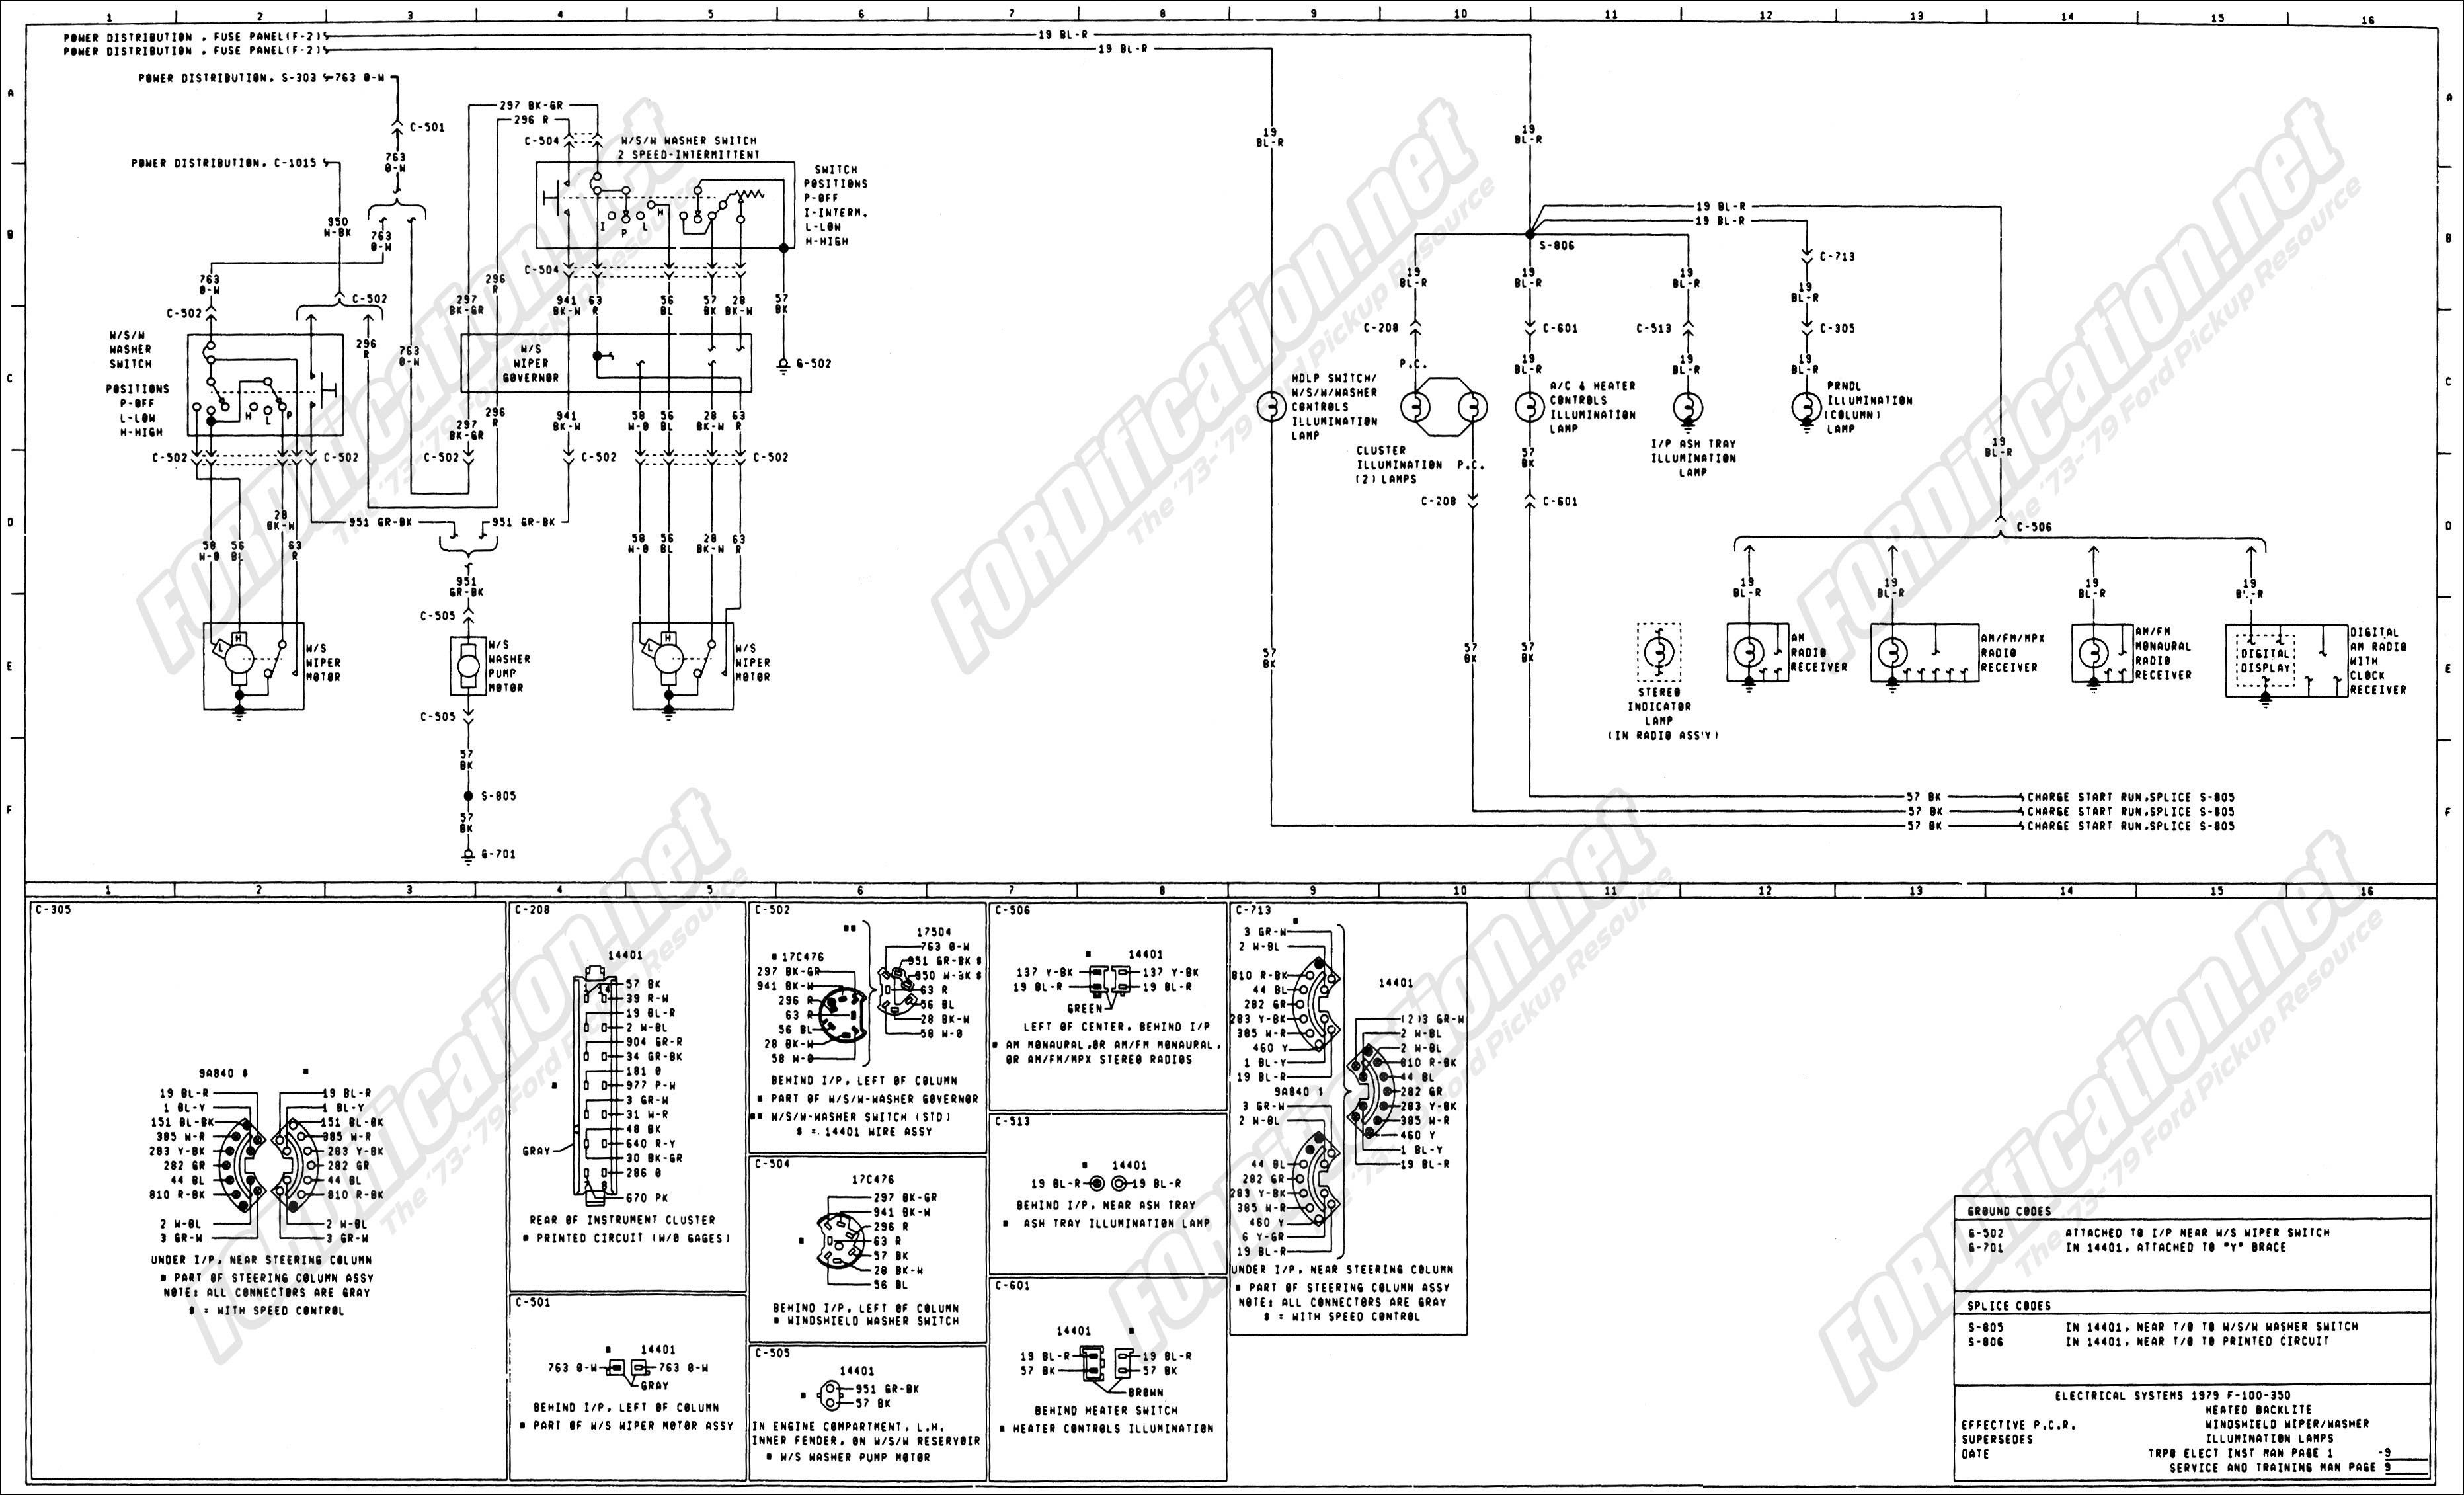 Ford Truck Steering Column Diagram 1973 1979 ford Truck Wiring Diagrams & Schematics fordification Of Ford Truck Steering Column Diagram